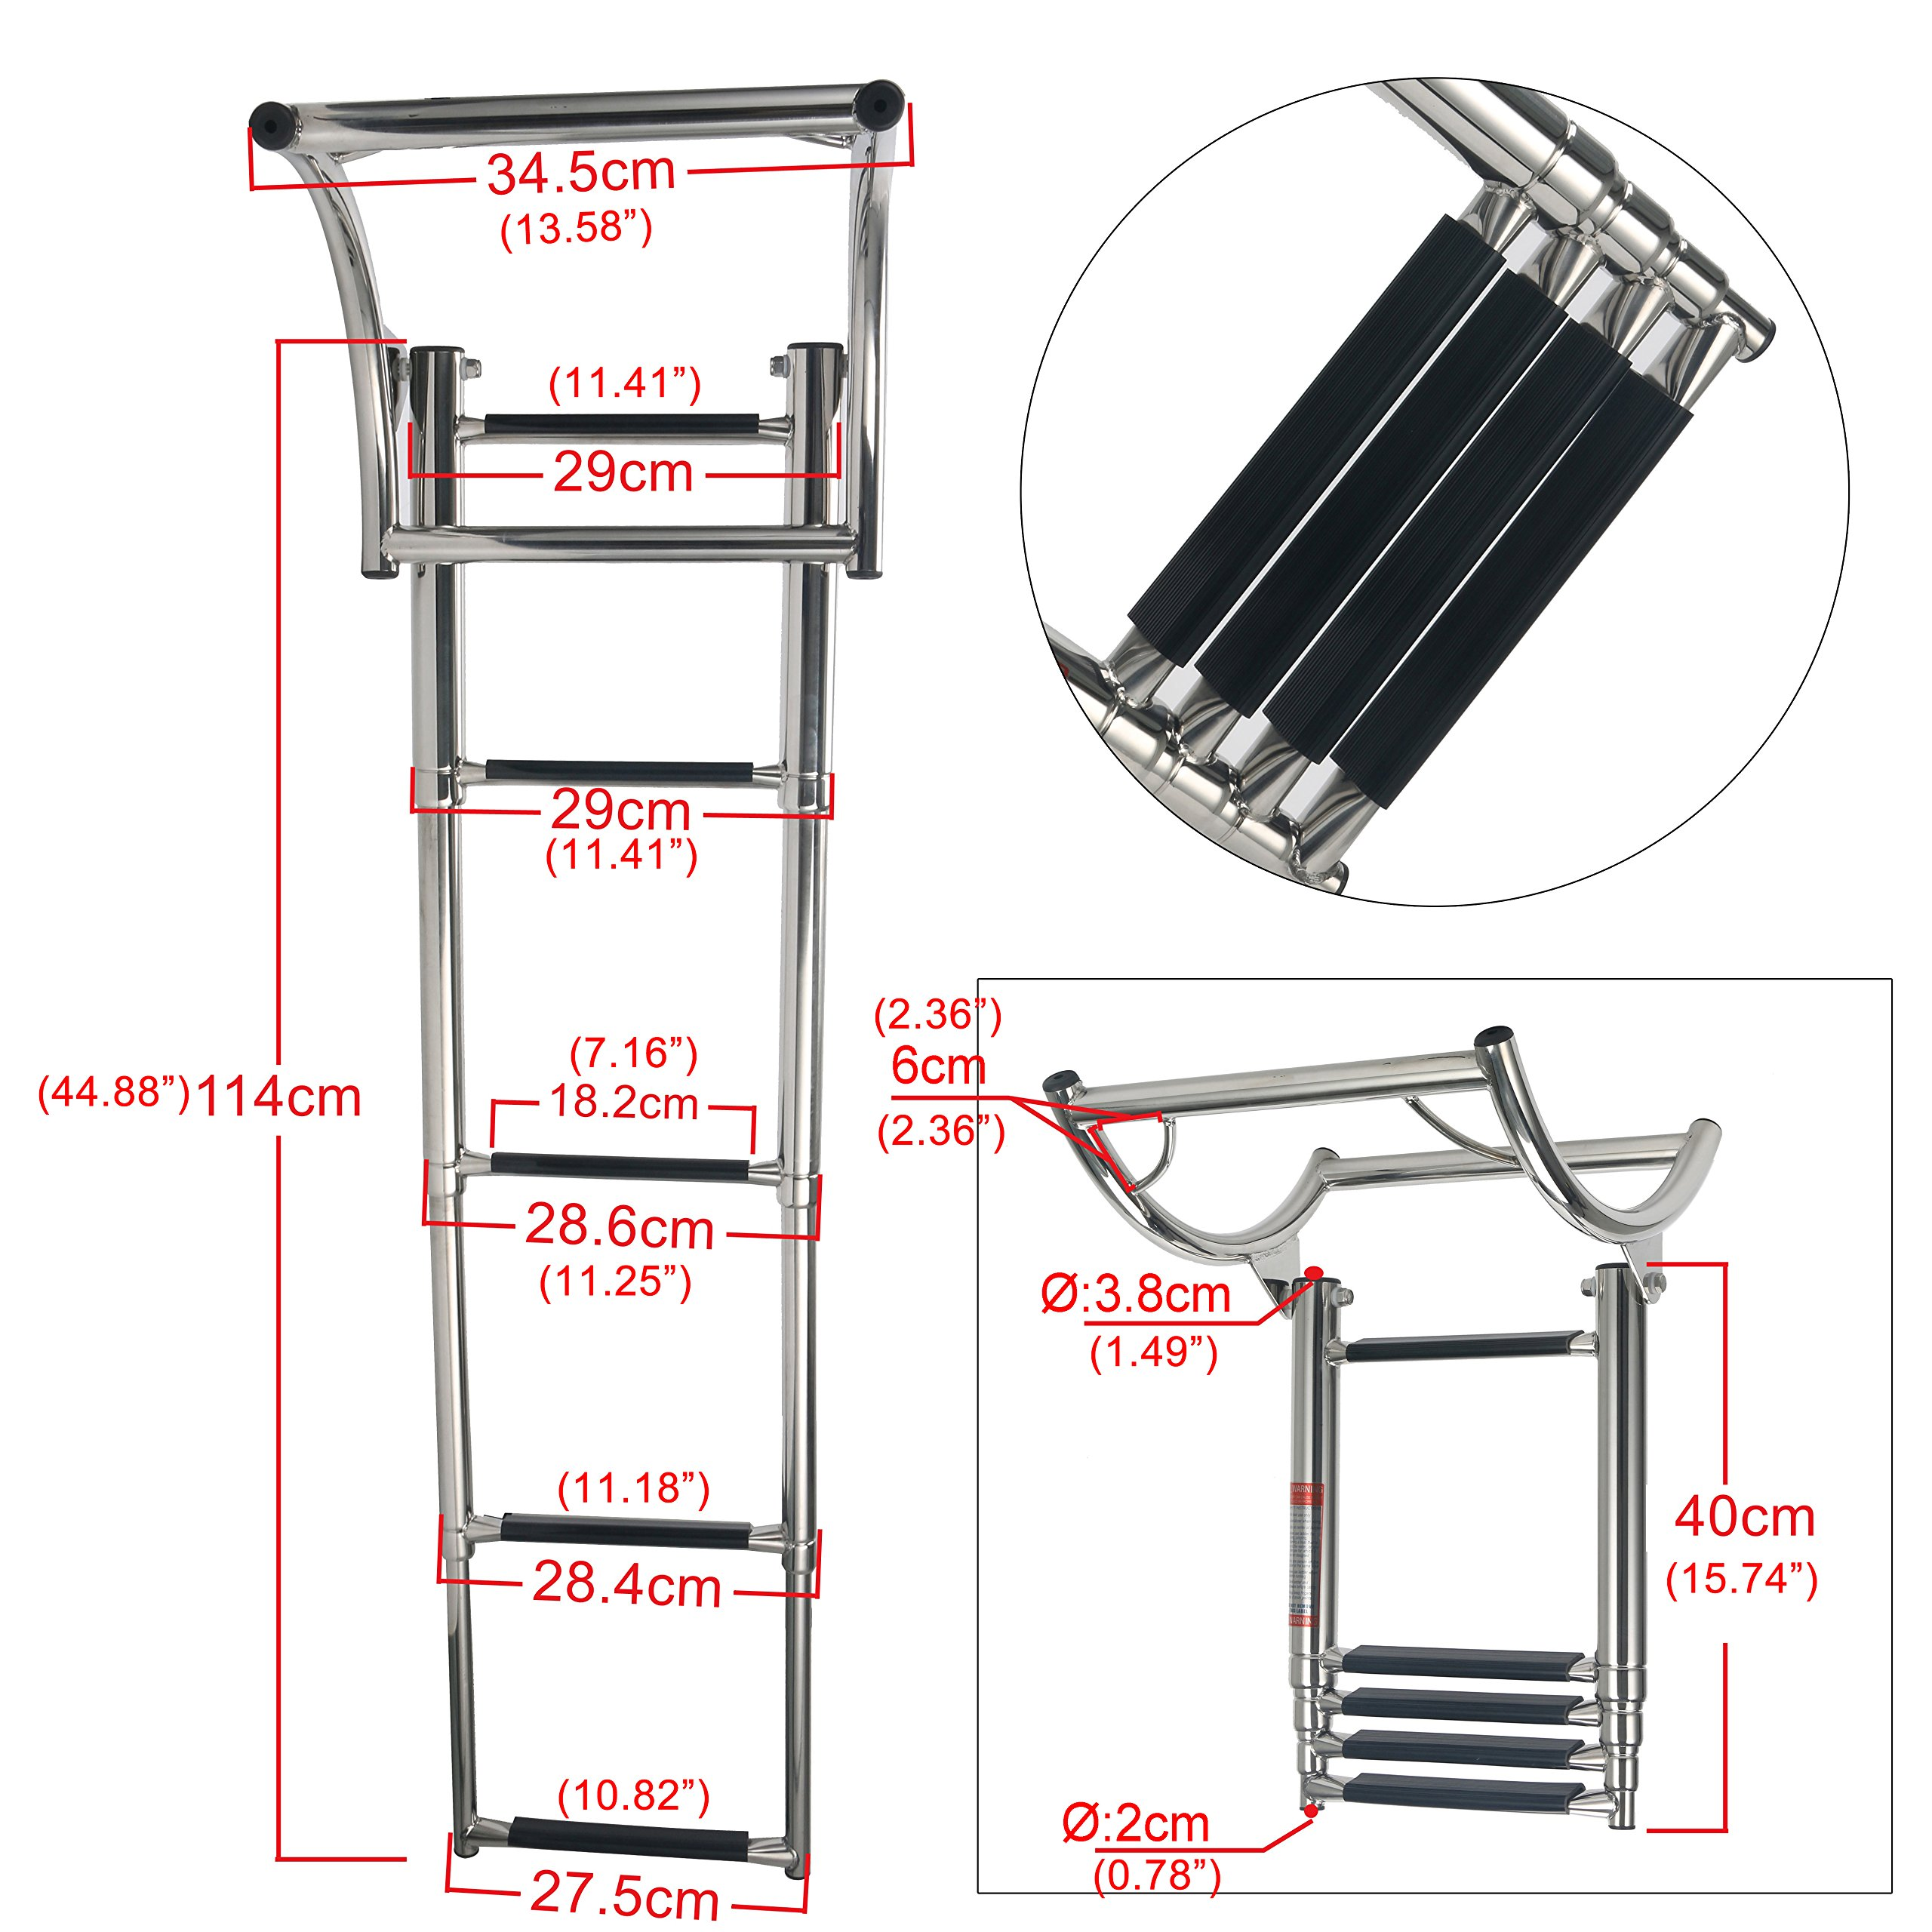 Amarine-made 4 Step Rib Ladder Stainless Steel Telescoping Swim Step Rubber Boat Ladder